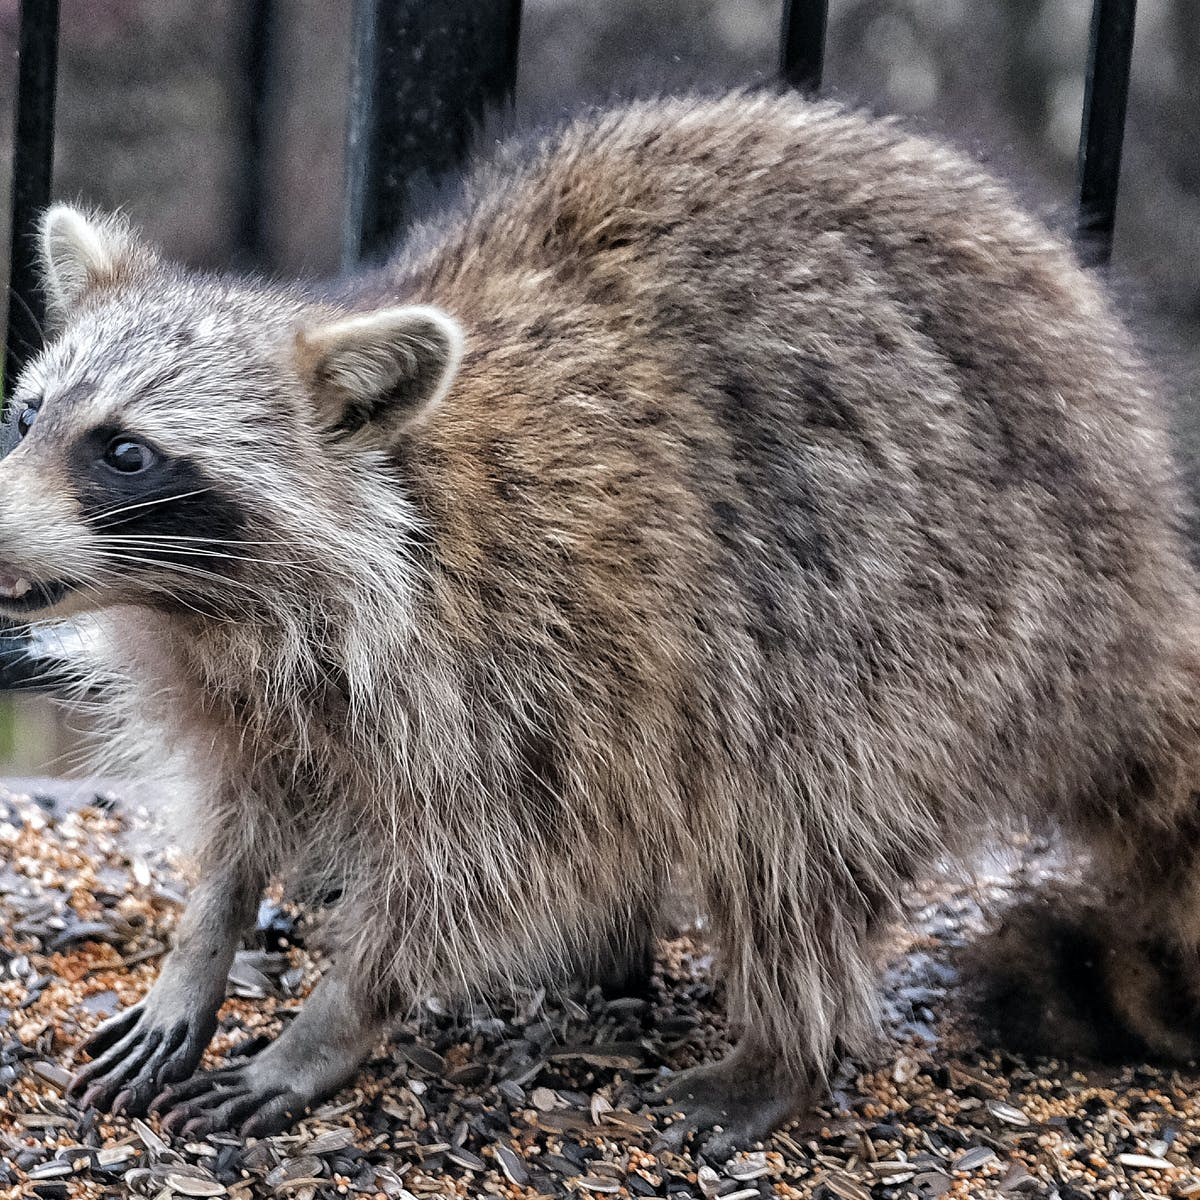 How To Handle Raccoons Snakes And Other Critters In Your Yard Hint Not With A Thermos